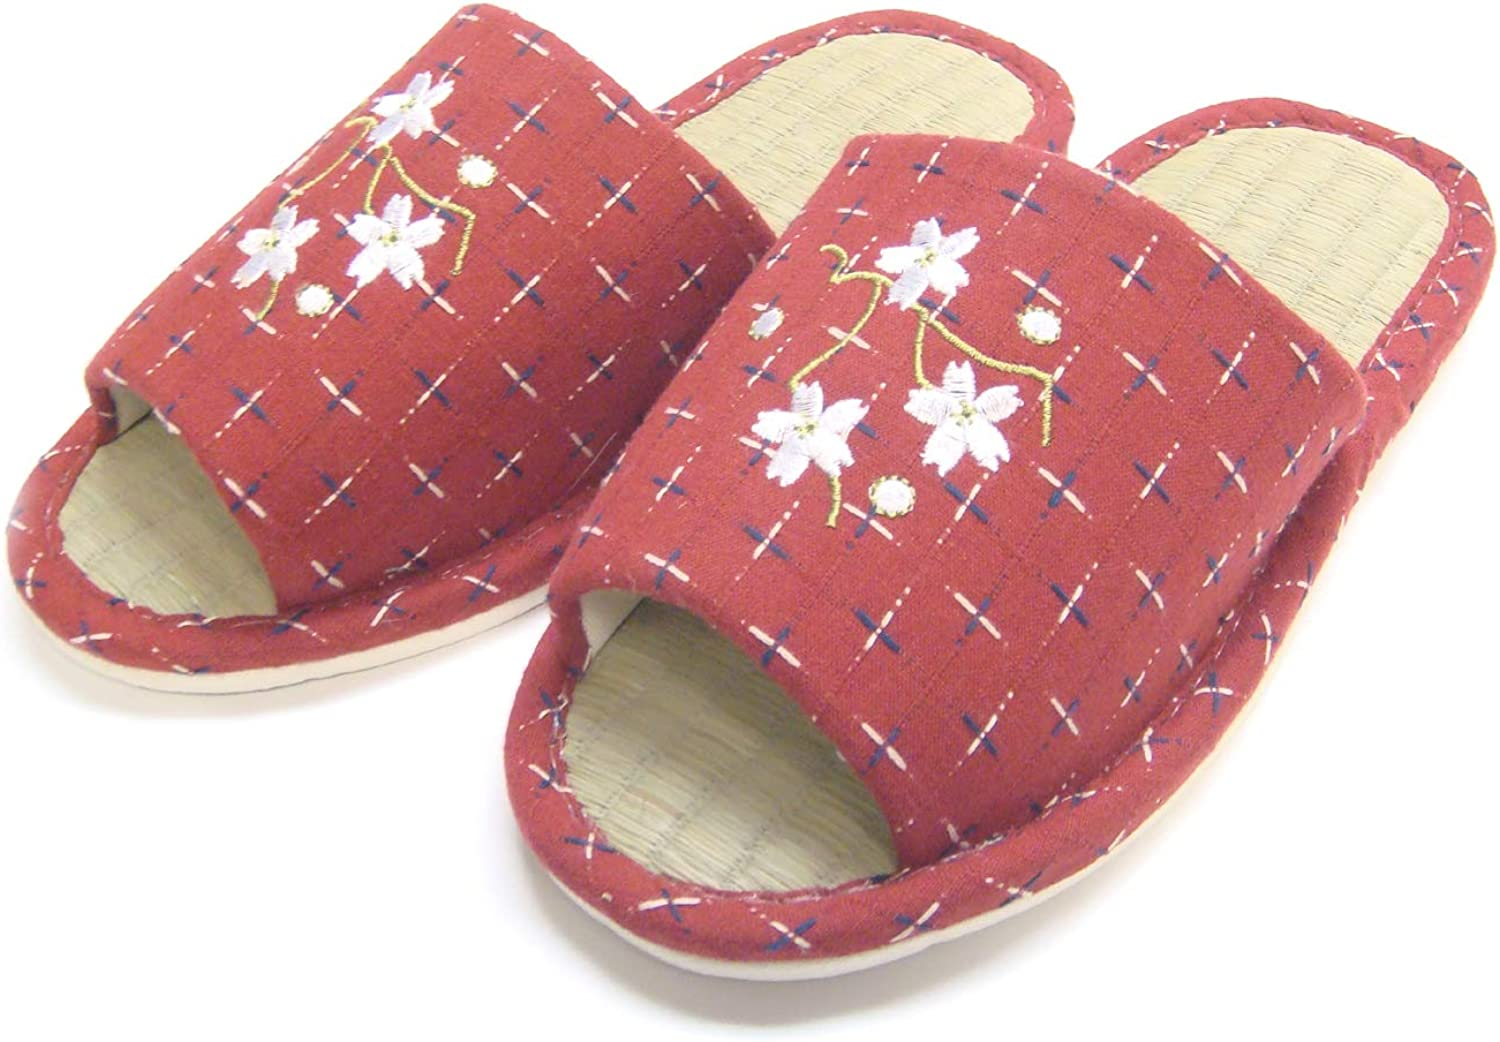 KNP26809T /Japanese Natural Bamboo Wide Width House Slippers